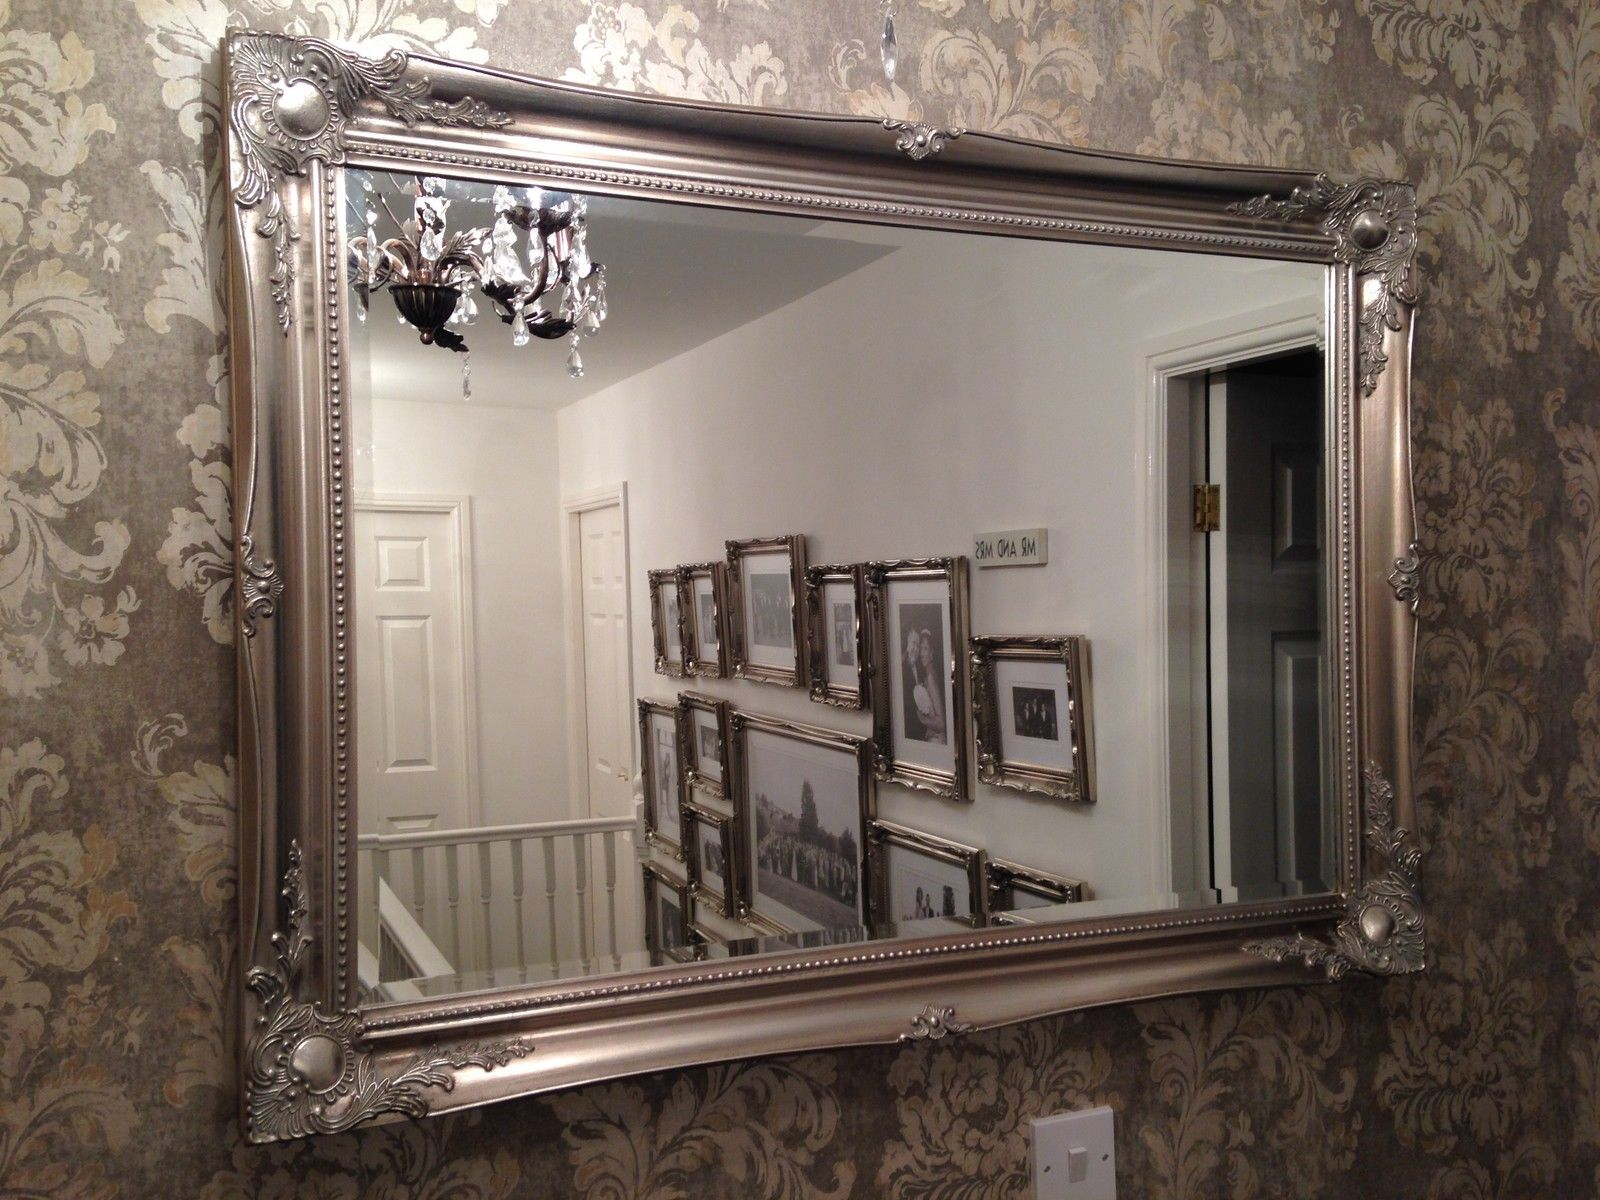 3512df53db50 large-antique-silver-shabby-chic-ornate-decorative-over-mantle-wall-mirror -39251-p.jpg